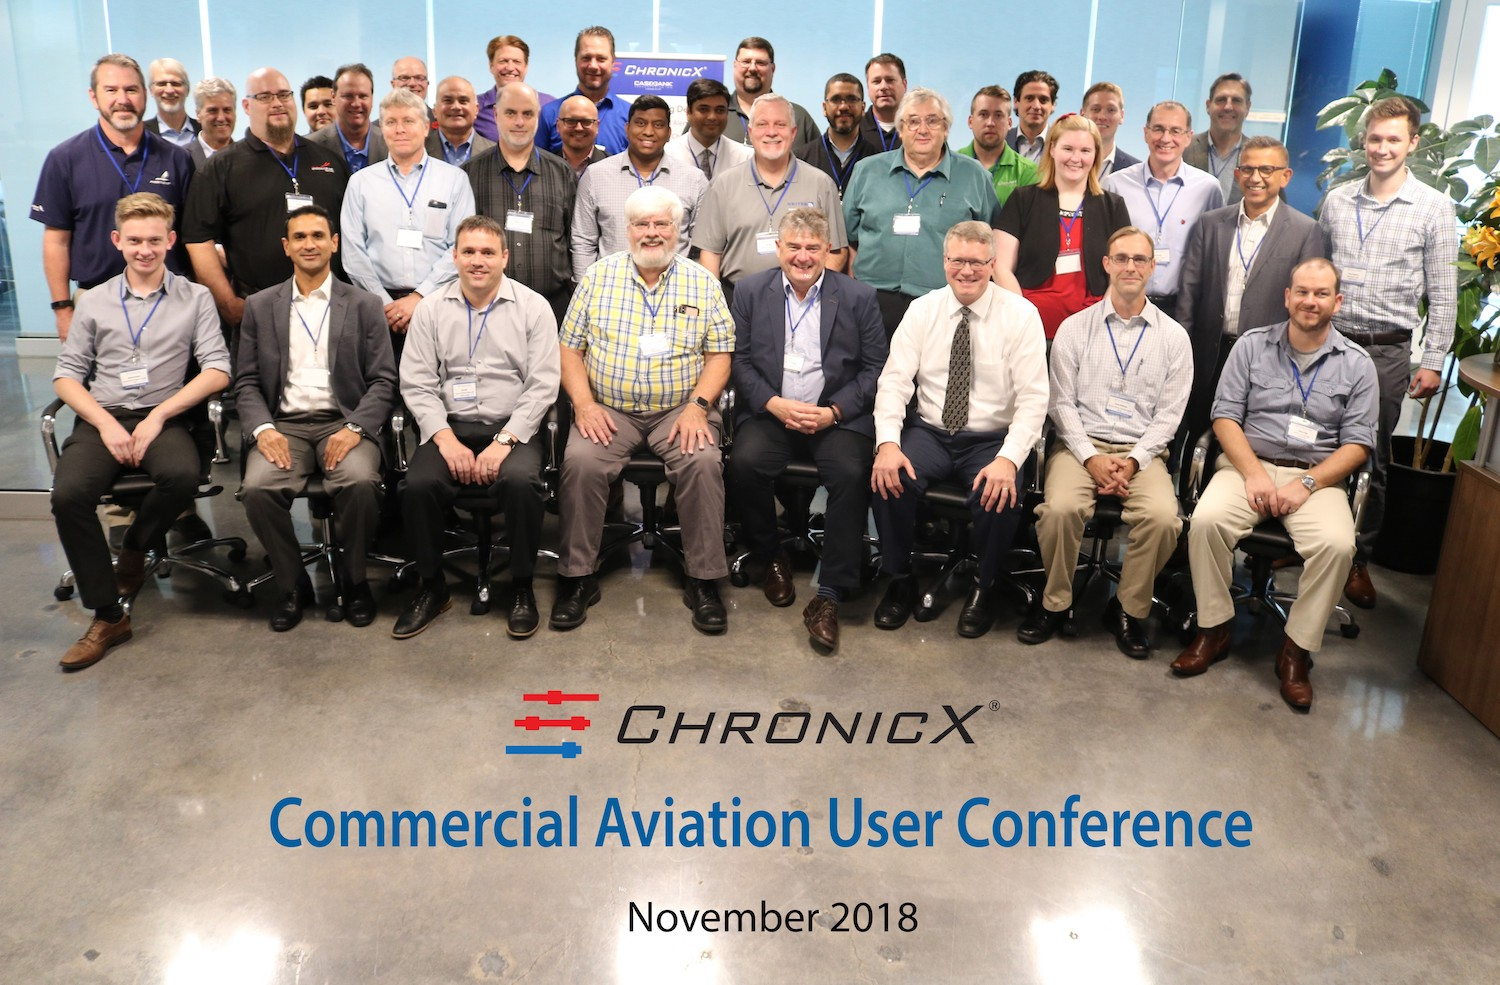 Group of people from commercial aviation user conference sitting and looking at camera